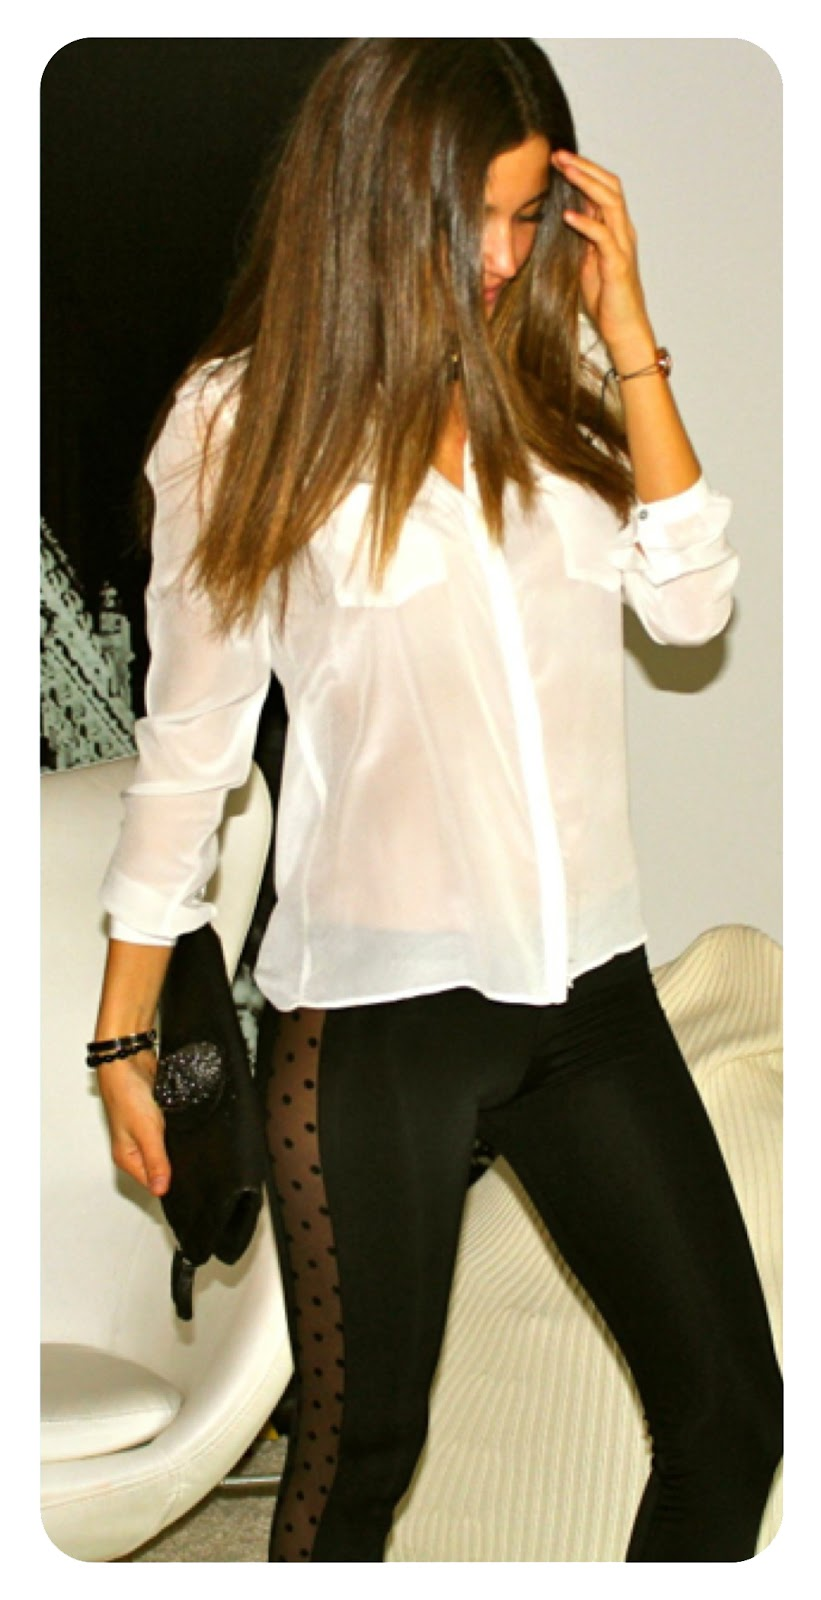 Malena Costa leggings